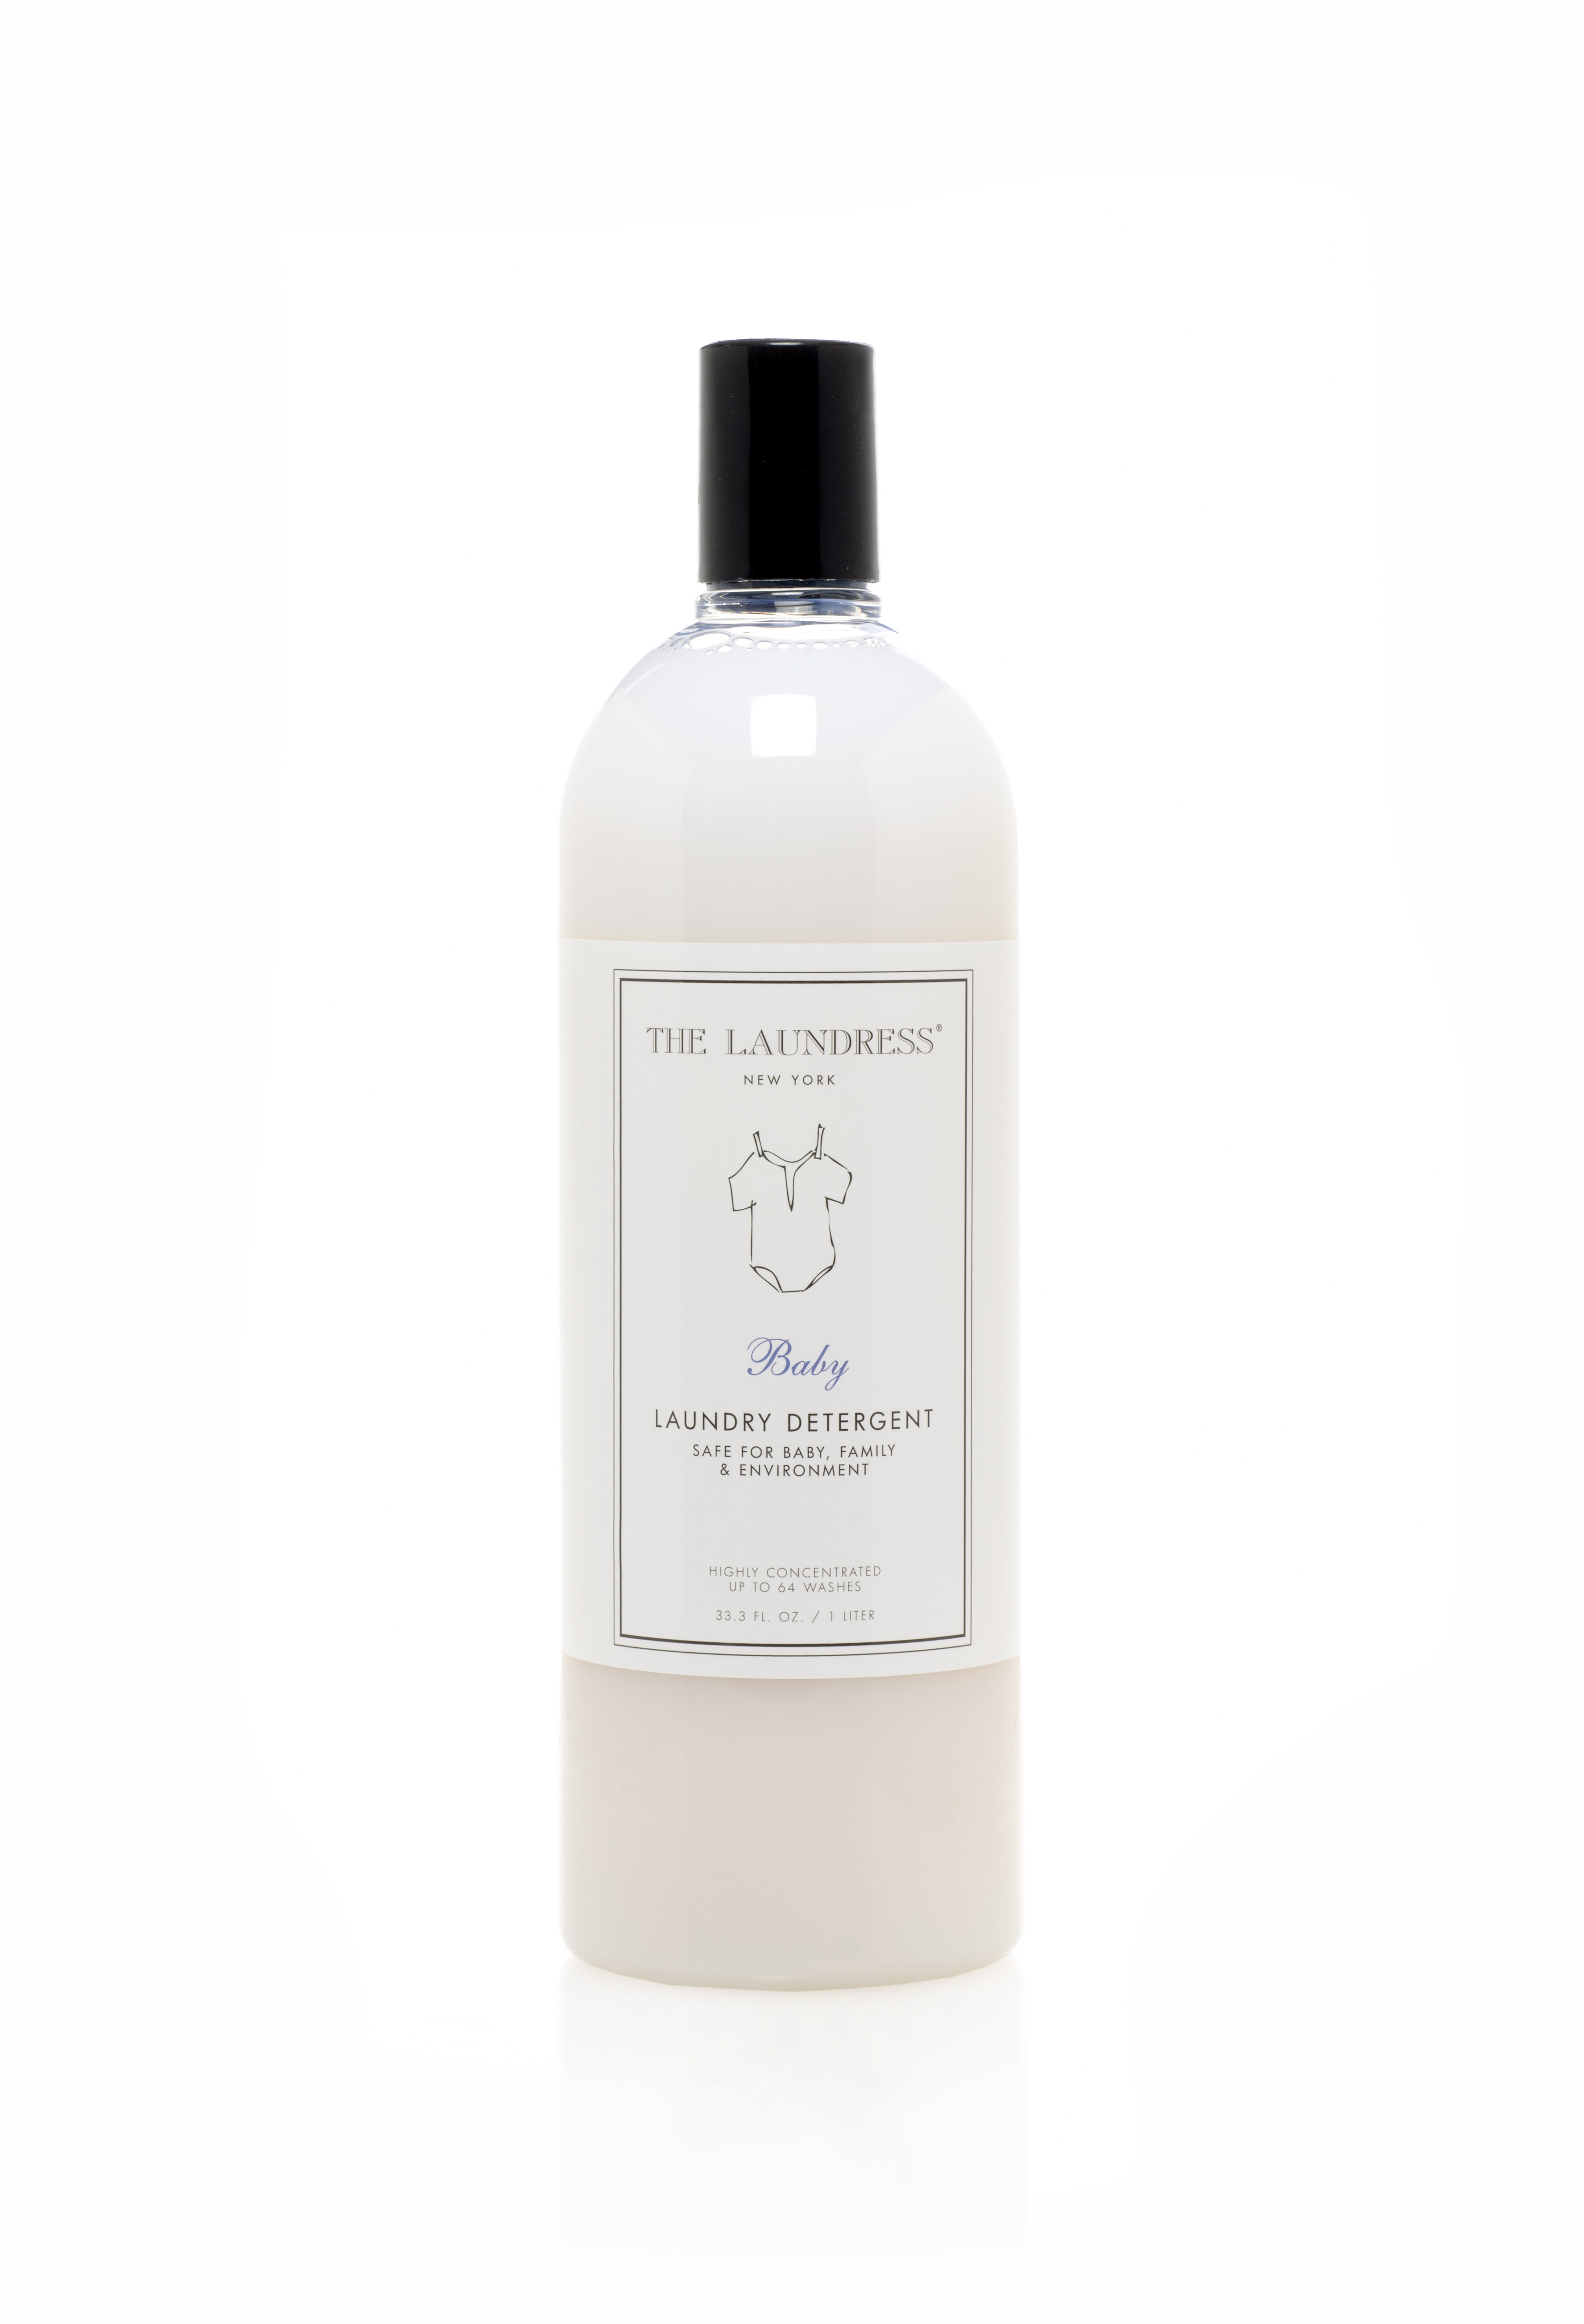 The Laundress Baby Detergent JS6TEHRHFABBE